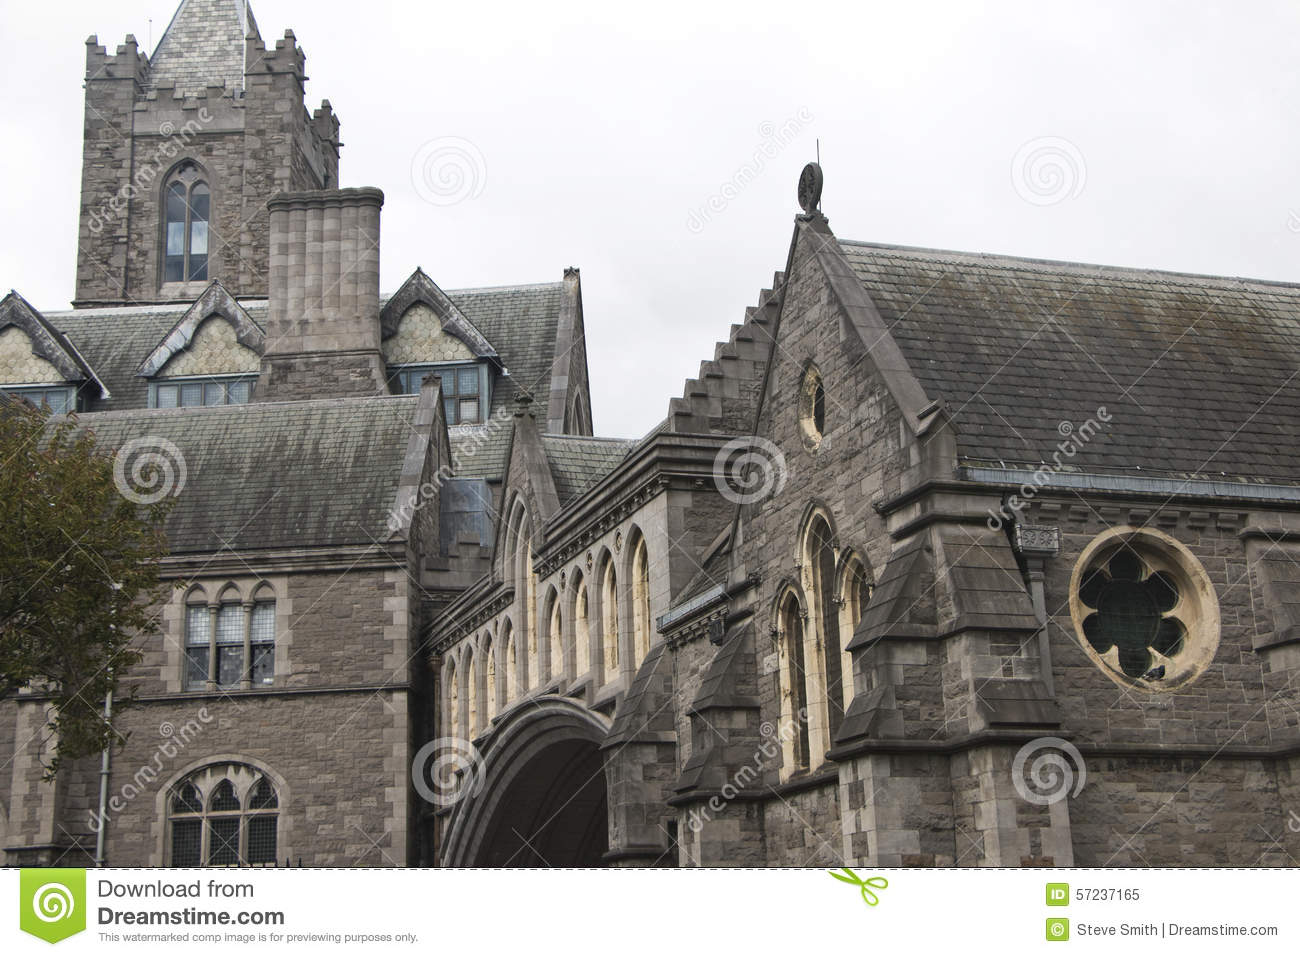 Christchurch Cathedral, an important Catholic church in Dublin